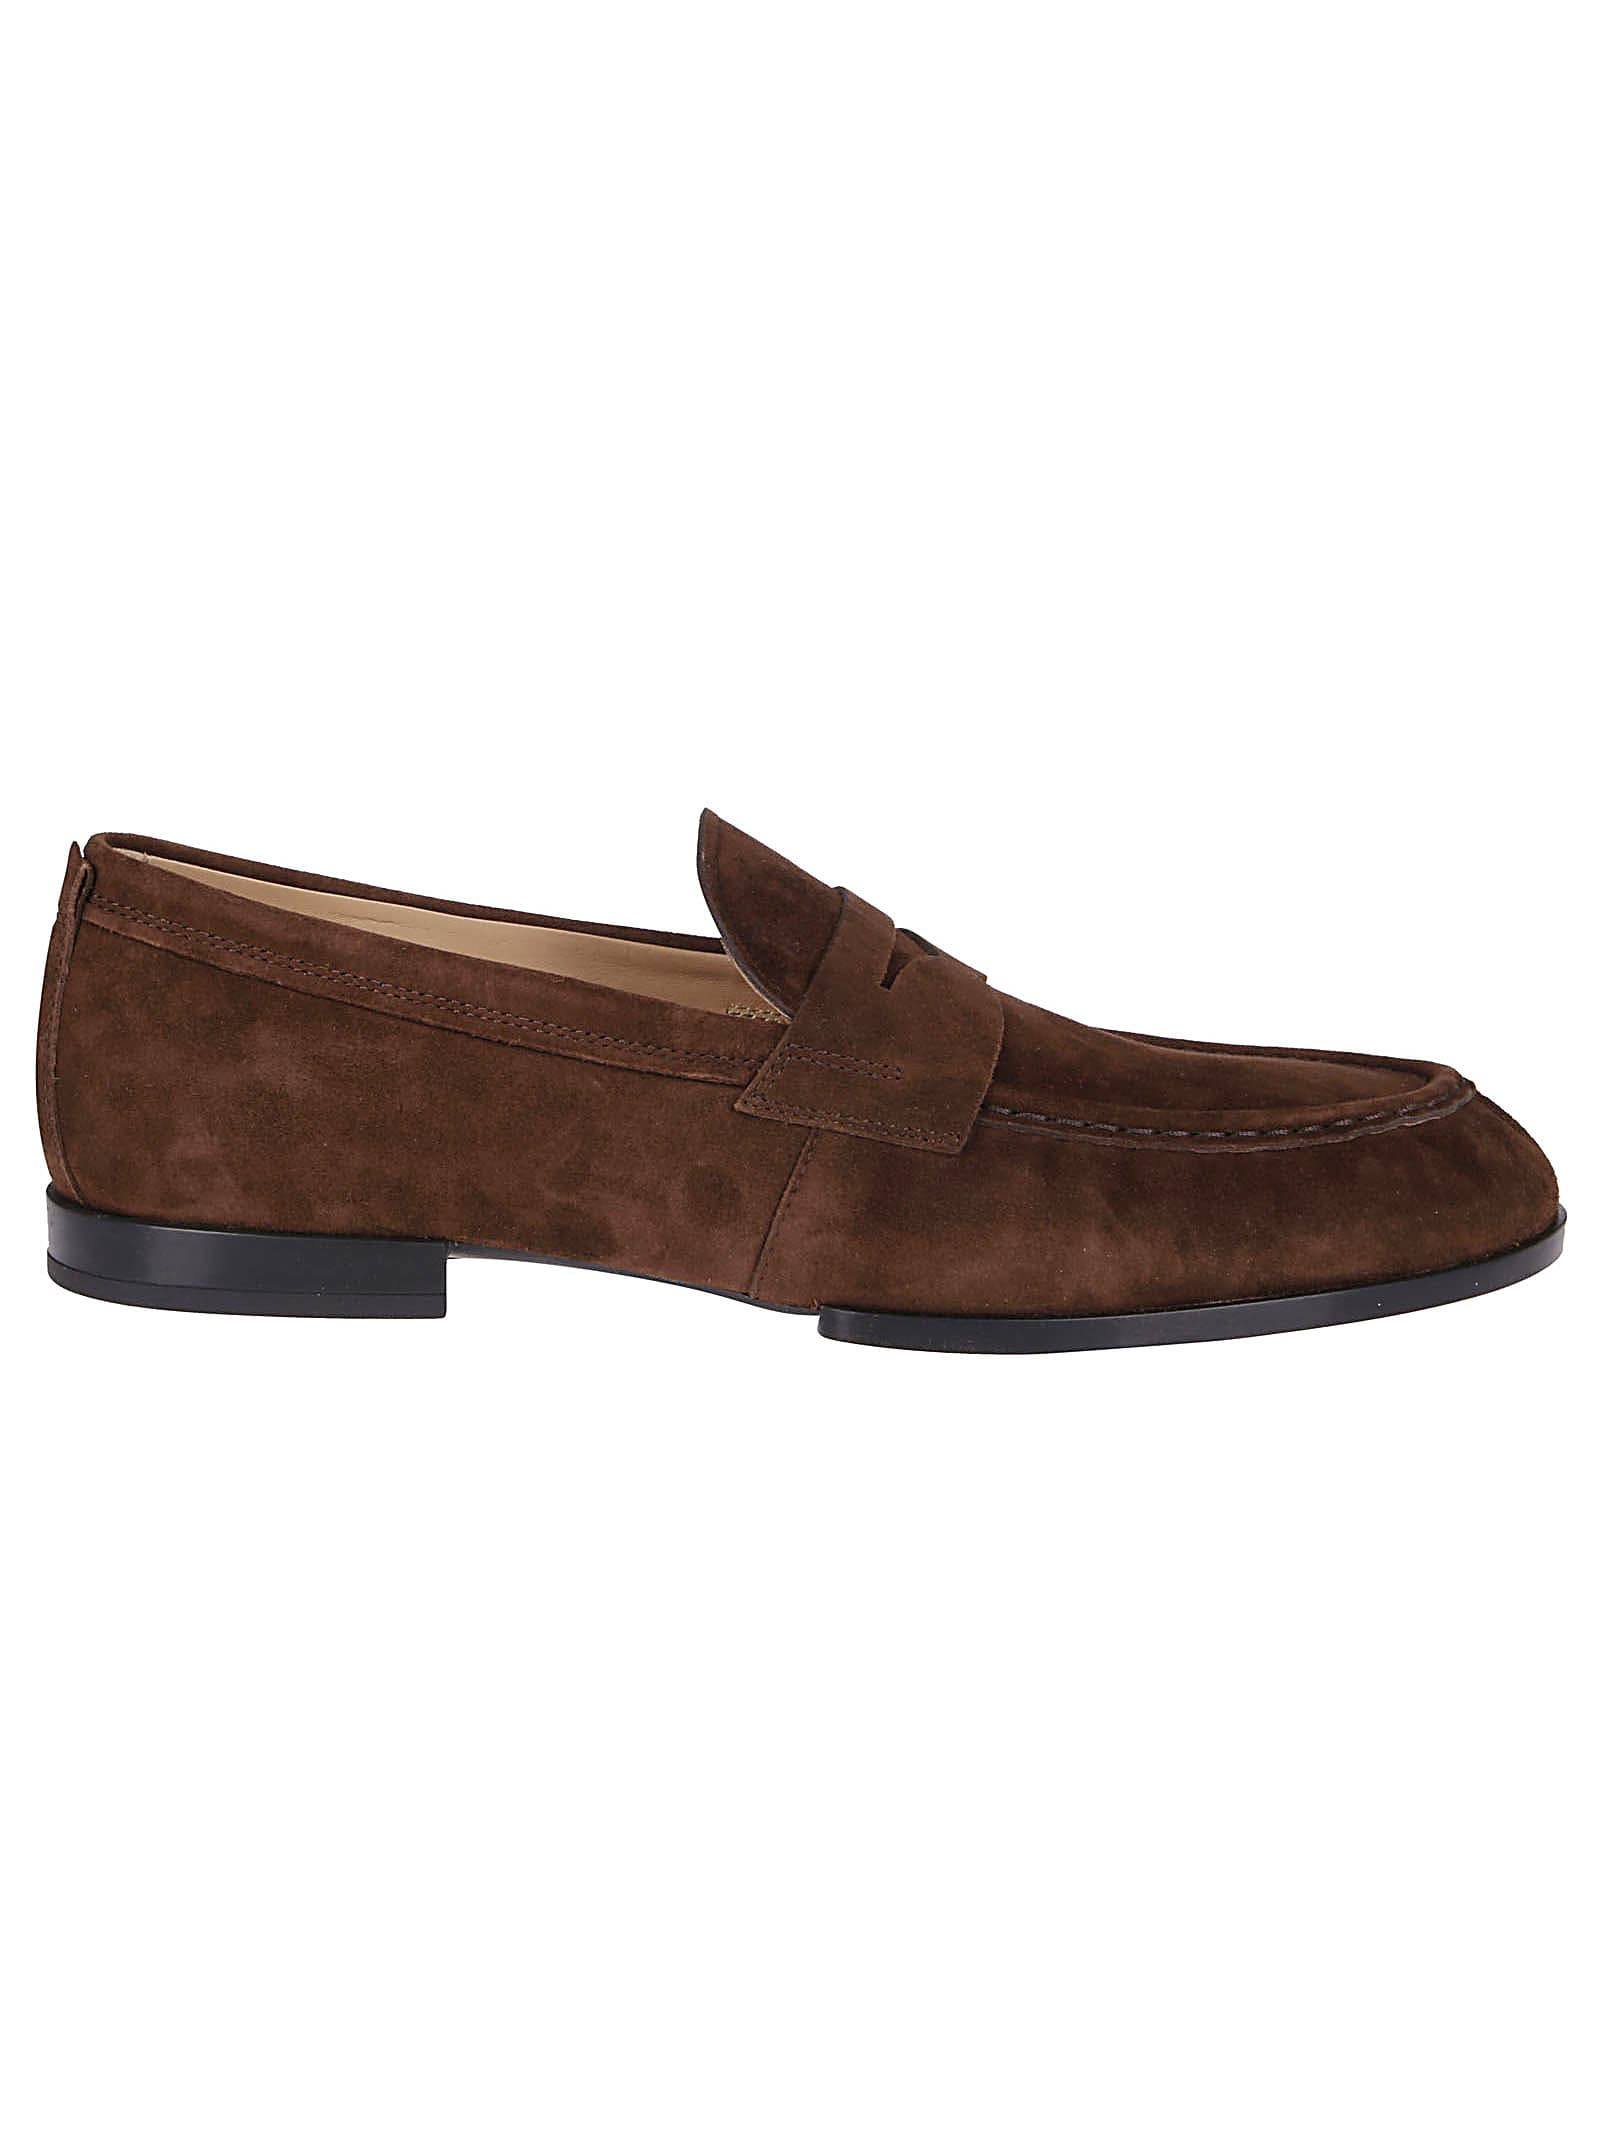 Tods Brown Suede Penny Loafers